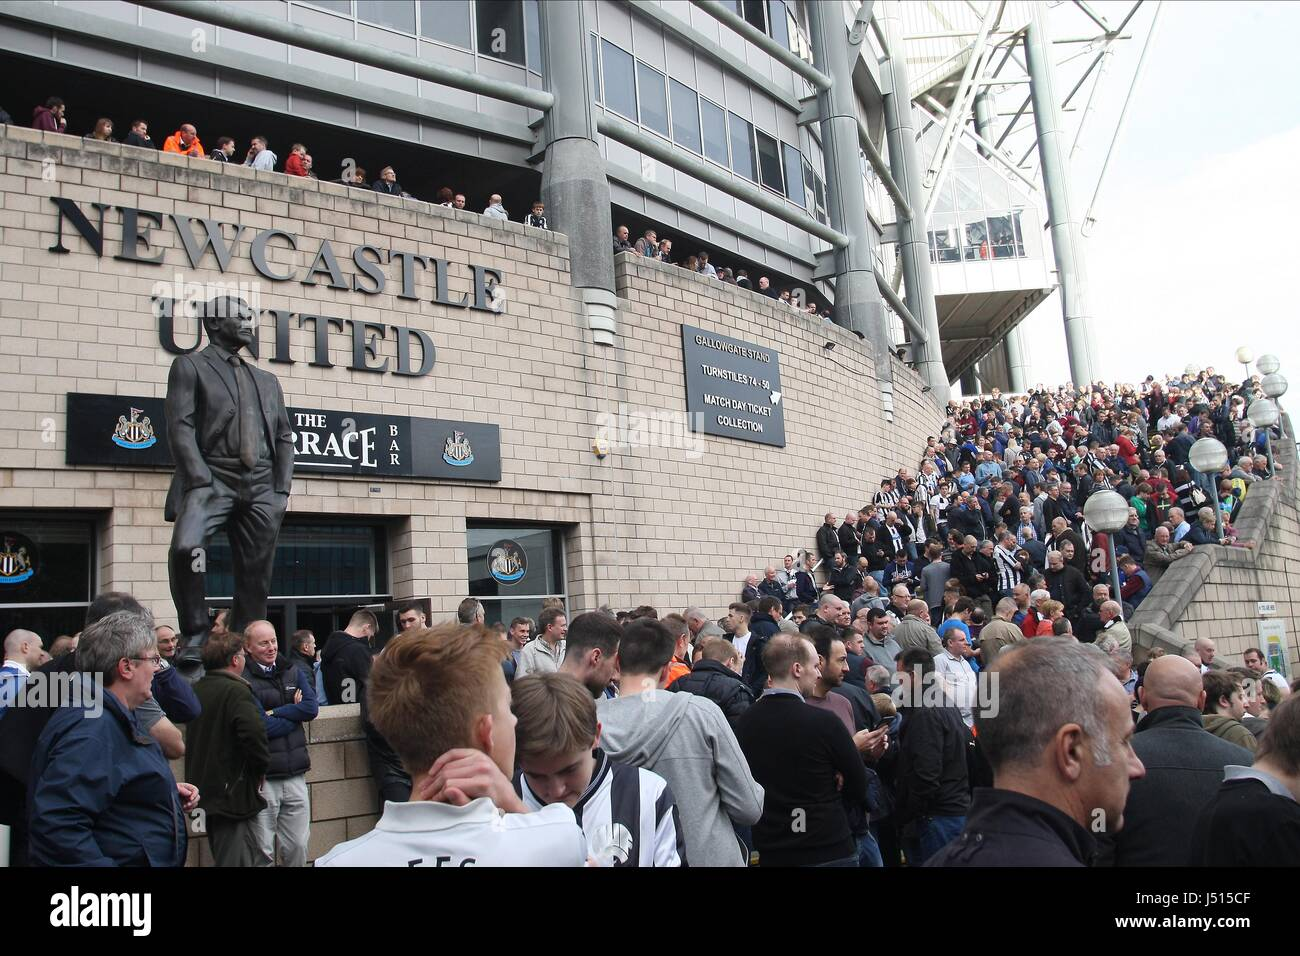 A BROKEN TV SCREEN DELAYS KICK NEWCASTLE UNITED V LEICESTER C ST JAMES PARK NEWCASTLE ENGLAND 18 October 2014 - Stock Image